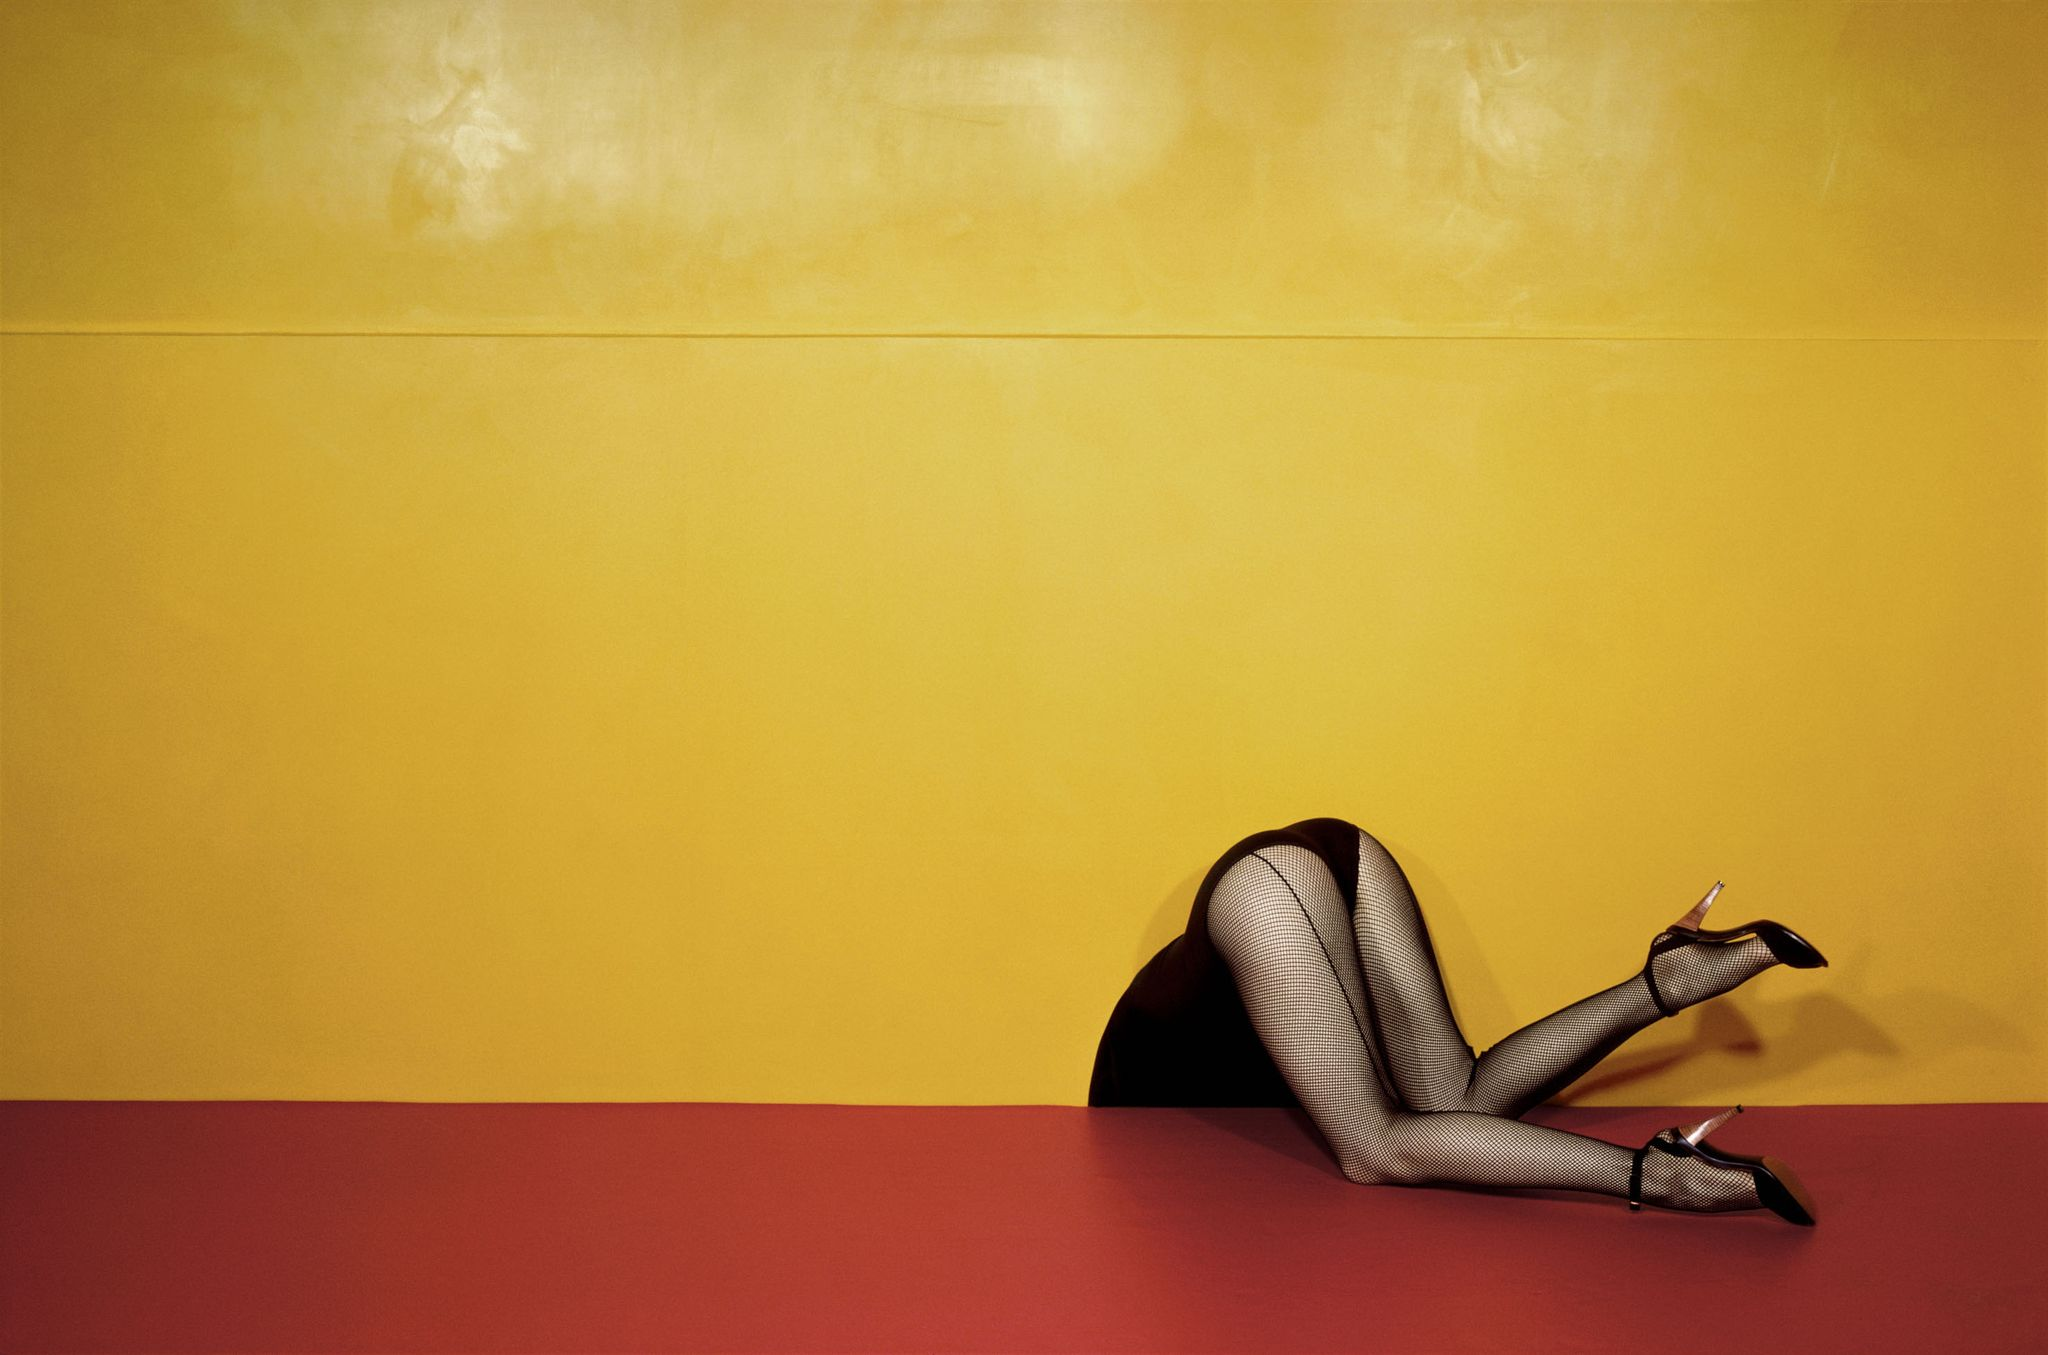 charles-jourdan-spring-1979-c-the-guy-bourdin-estate-2019-courtesy-of-art-and-commerce-1565199035